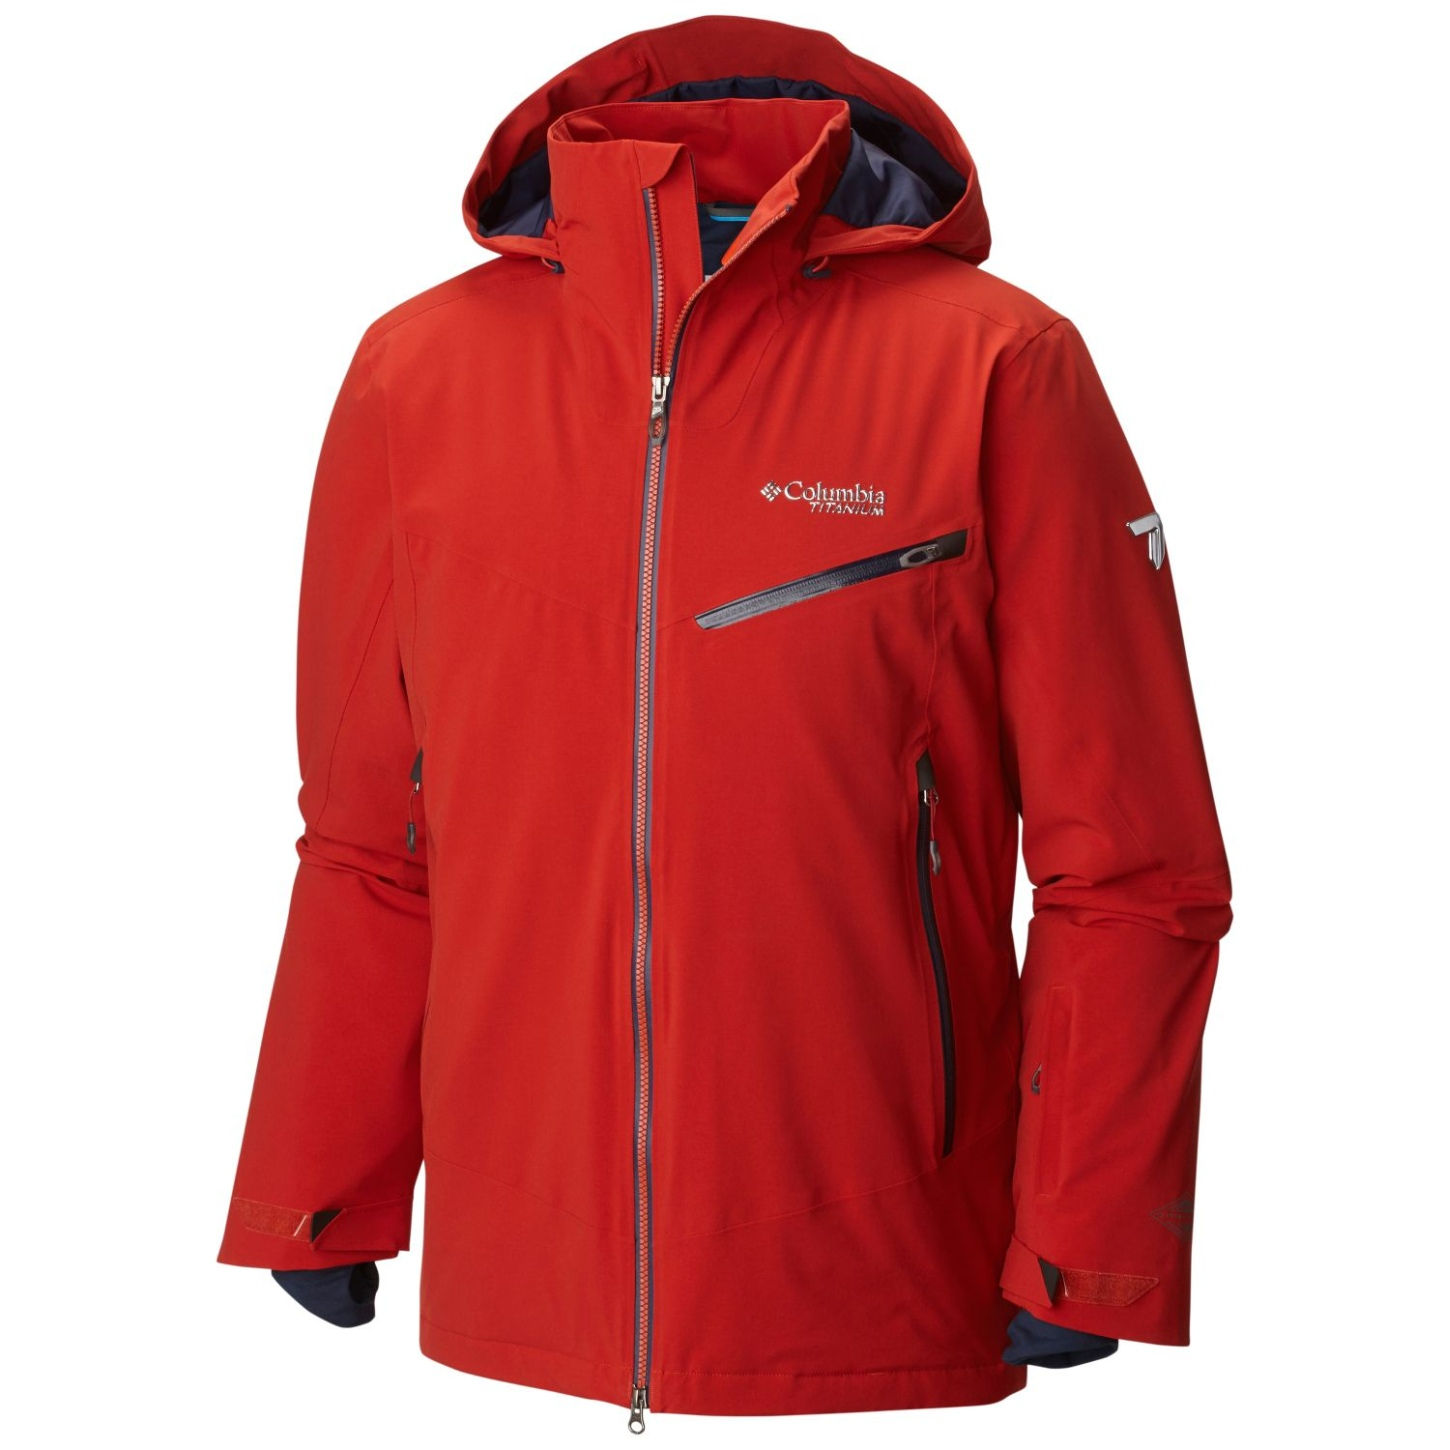 Columbia Men's Carvin' Ski Jacket Rust Red-30